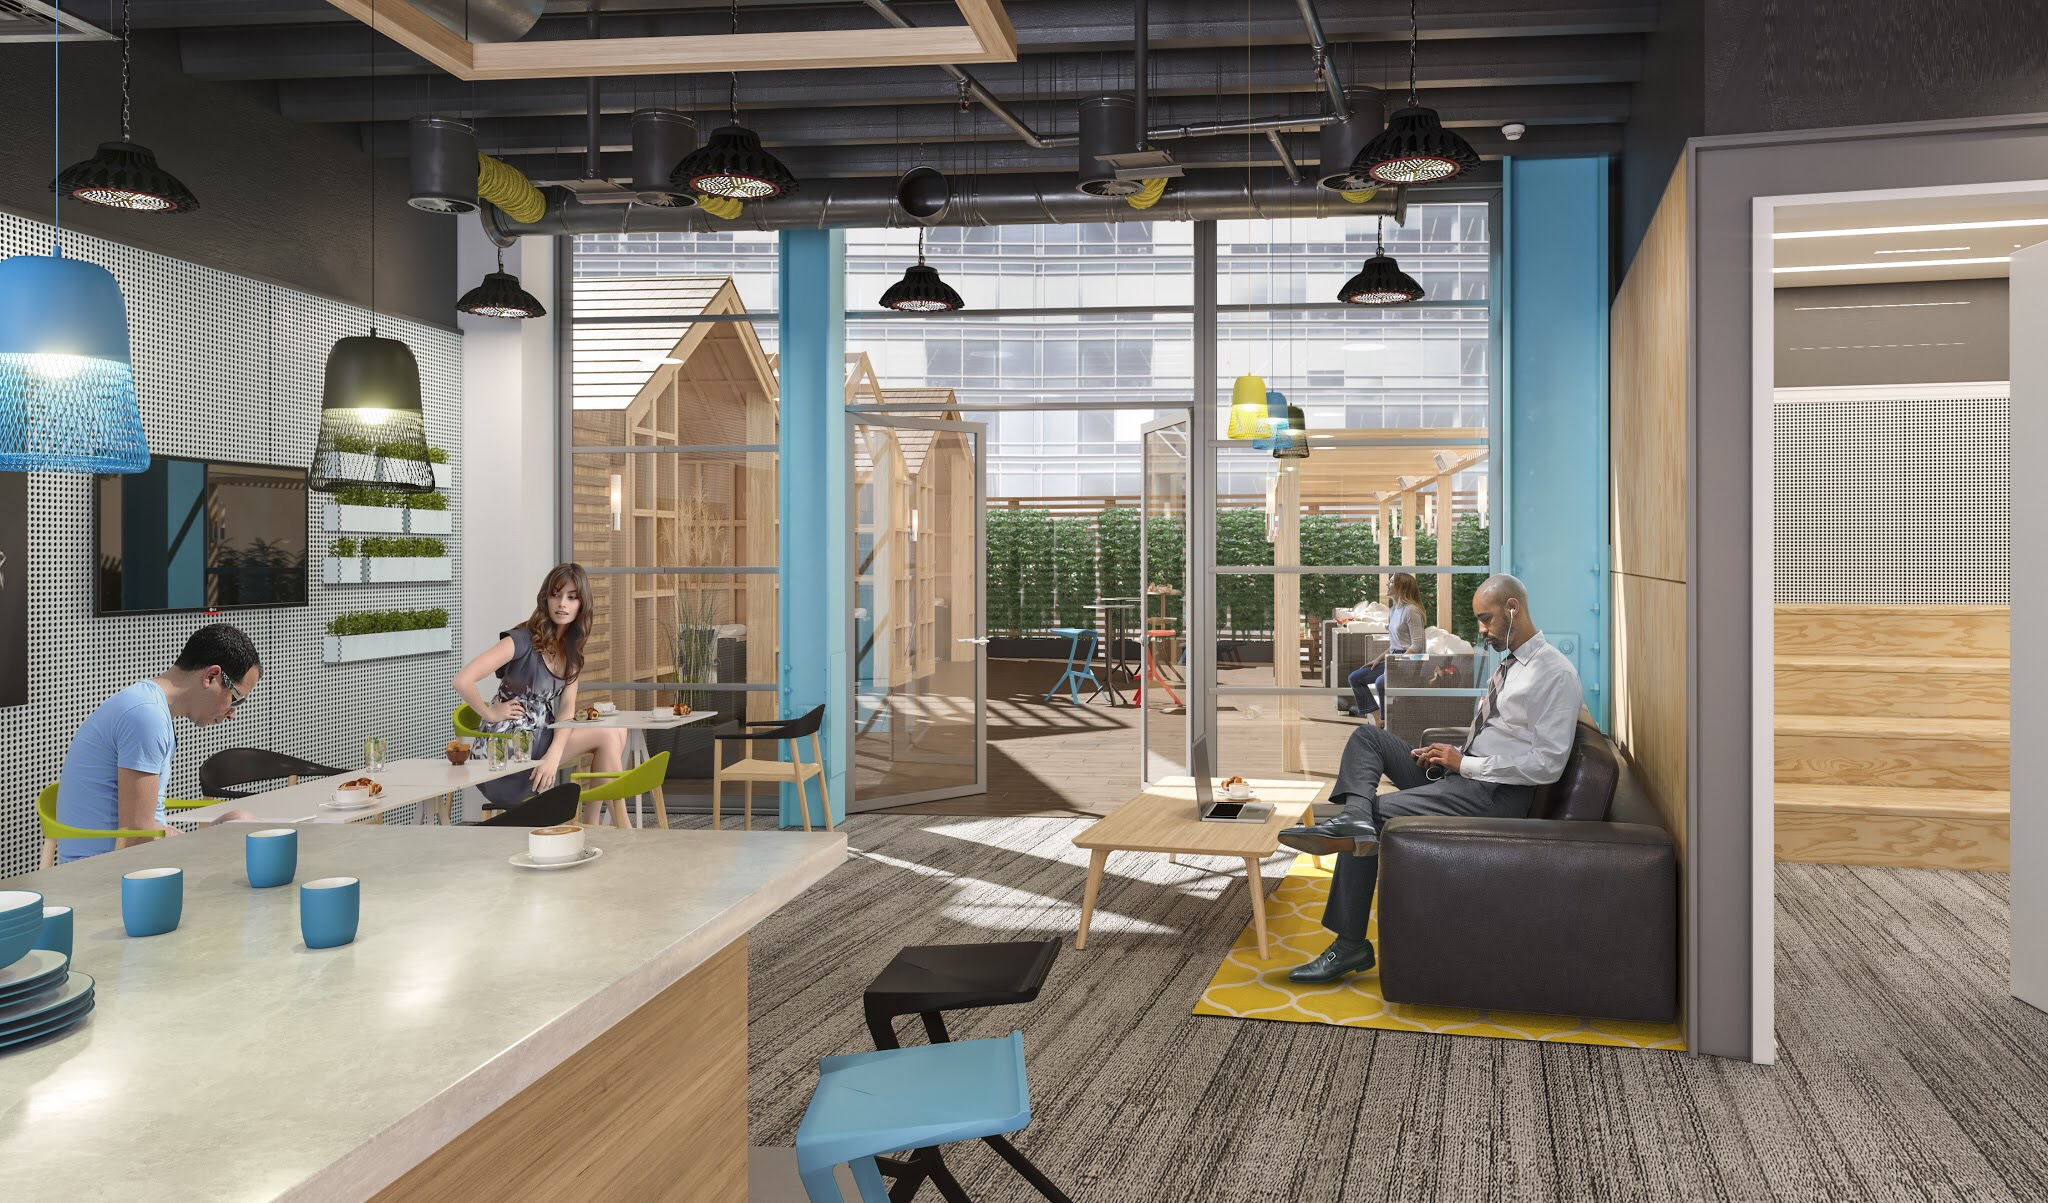 creative office space. Exciting And Progressive Hubs For Media, Tech Digital Businesses In The Country, MediaCityUK Is Set To Launch Arrive, Its New Creative Office Space